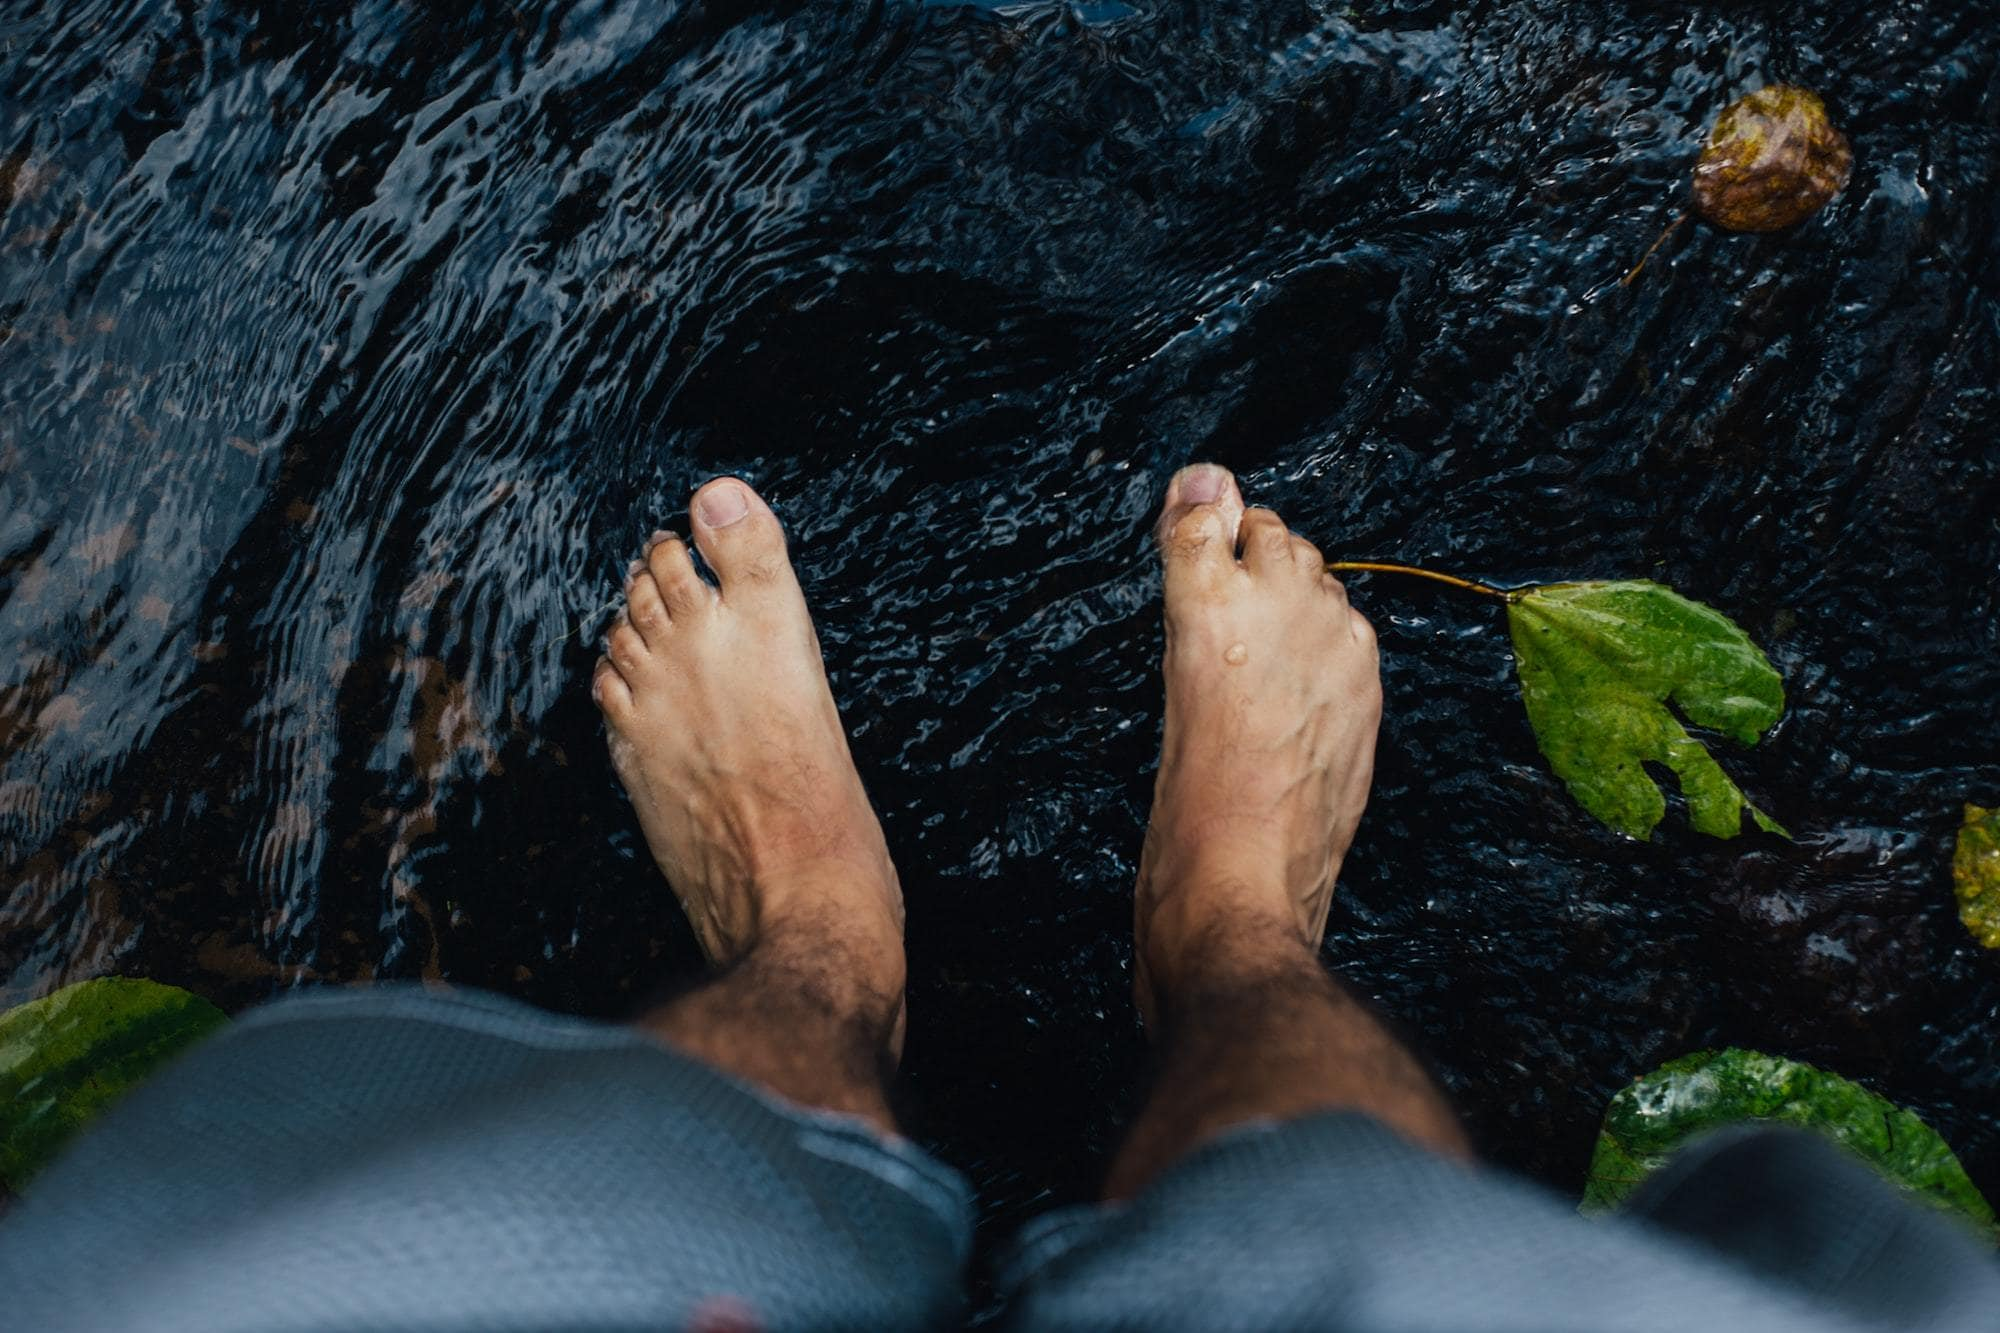 Learn how to prevent blisters and the best way to treat one when you're out on the trails, so you can keep your feet happy and healthy.